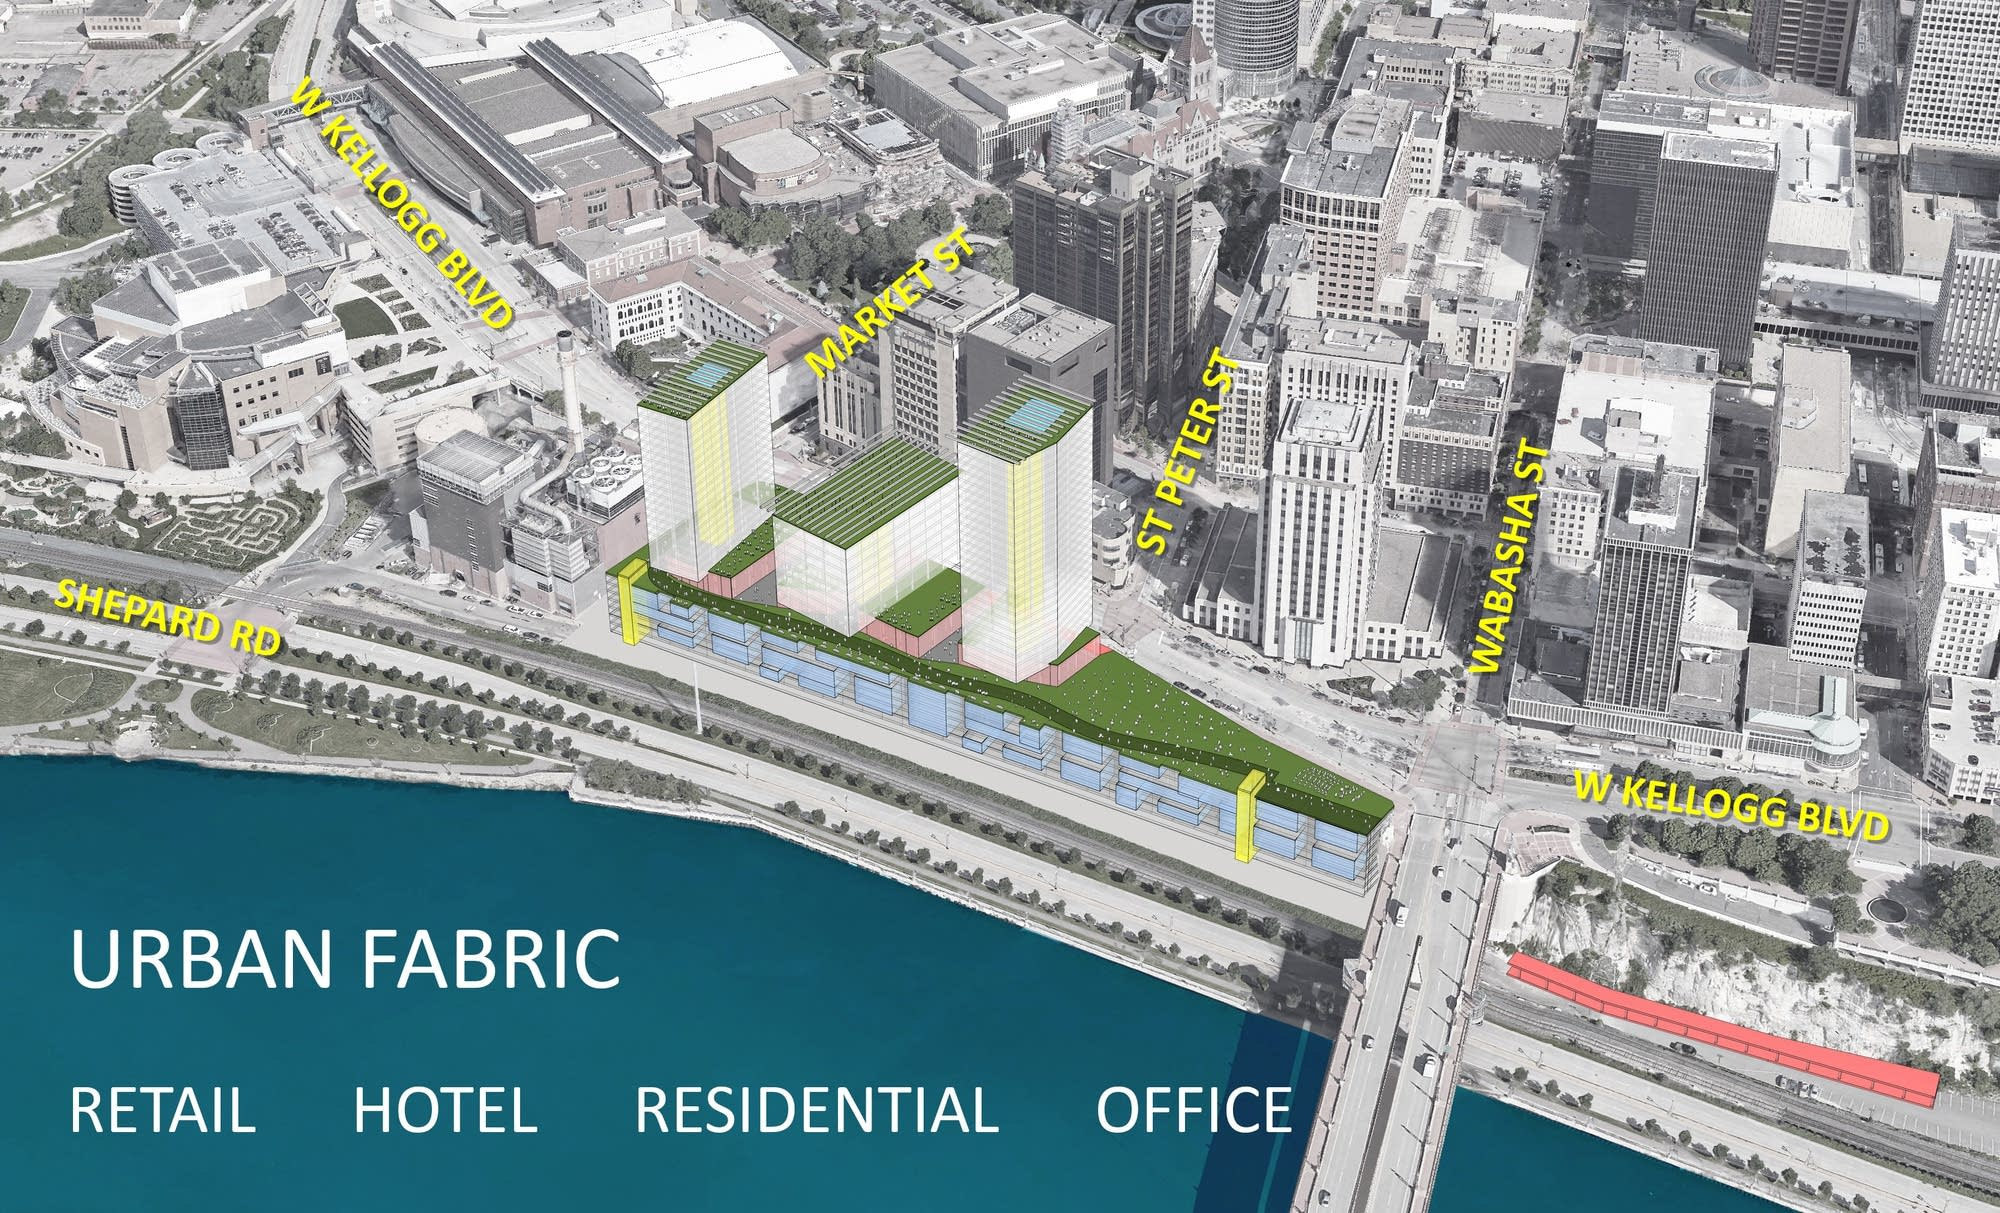 Rendering of the development proposed by Cardon Development